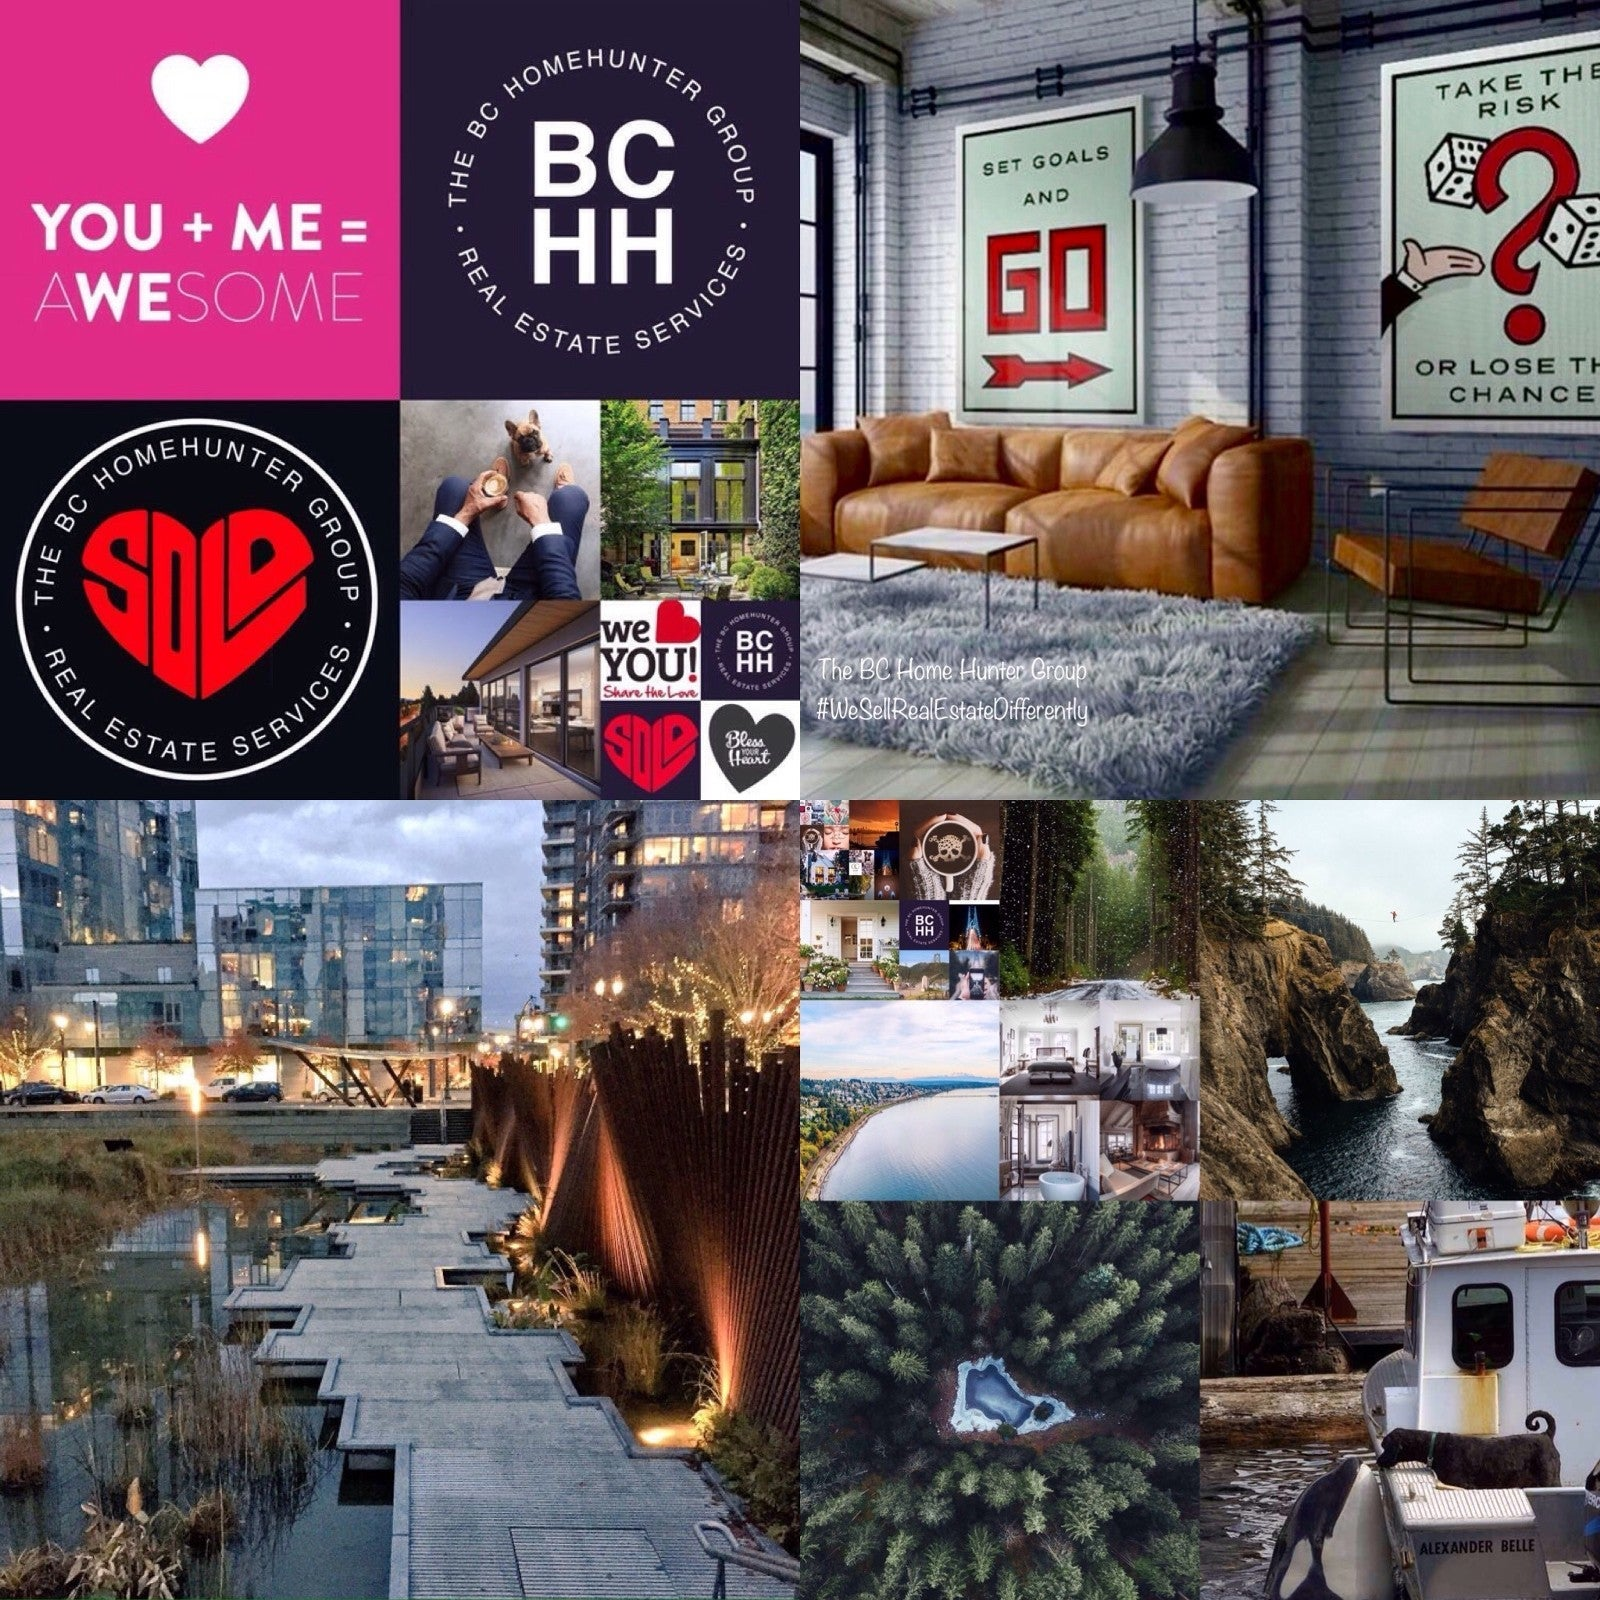 THE BC HOME HUNTER GROUP l AWARD WINNING URBAN & SUBURBAN METRO VANCOUVER l FRASER VALLEY l BC REAL ESTATE EXPERTS 604-767-6736 #BCHOMEHUNTER.COM #BCHH BCHHREALTY.COM #WESELLBC.COM #WELOVEBC.COM #Vancouver #NorthShore #WestVancouver #NorthVancouver #Langley #FraserValley #CoalHarbour #Kerrisdale #Kitsilano #PointGrey #Marpole #Dunbar #Oakridge #Coquitlam #EastVan #NorthShoreHomehunter #Yaletown #FraserValleyHomeHunter #VancouverHomeHunter #LynnValley #Lonsdale #VancouverHomeHunter #FraserValleyHomeHunter  @BCHOMEHUNTER  THE BC HOME HUNTER GROUP  AWARD WINNING URBAN & SUBURBAN REAL ESTATE TEAM WITH HEART 604-767-6736  METRO VANCOUVER I FRASER VALLEY I BC  #Vancouver #WhiteRock #SouthSurrey #Starbucks #WestVancouver #Langley #MapleRidge #NorthVancouver #Langley #FraserValley #Burnaby #FortLangley #PittMeadows #Delta #Richmond #CoalHarbour #Surrey #Abbotsford #FraserValley #Kerrisdale #Cloverdale #Coquitlam #EastVan #Richmond #PortMoody #Yaletown #CrescentBeach #BCHHREALTY #MorganCreek #PortMoody #Burnaby #WeLoveBC #OceanPark #FraserValleyHomeHunter #VancouverHomeHunter